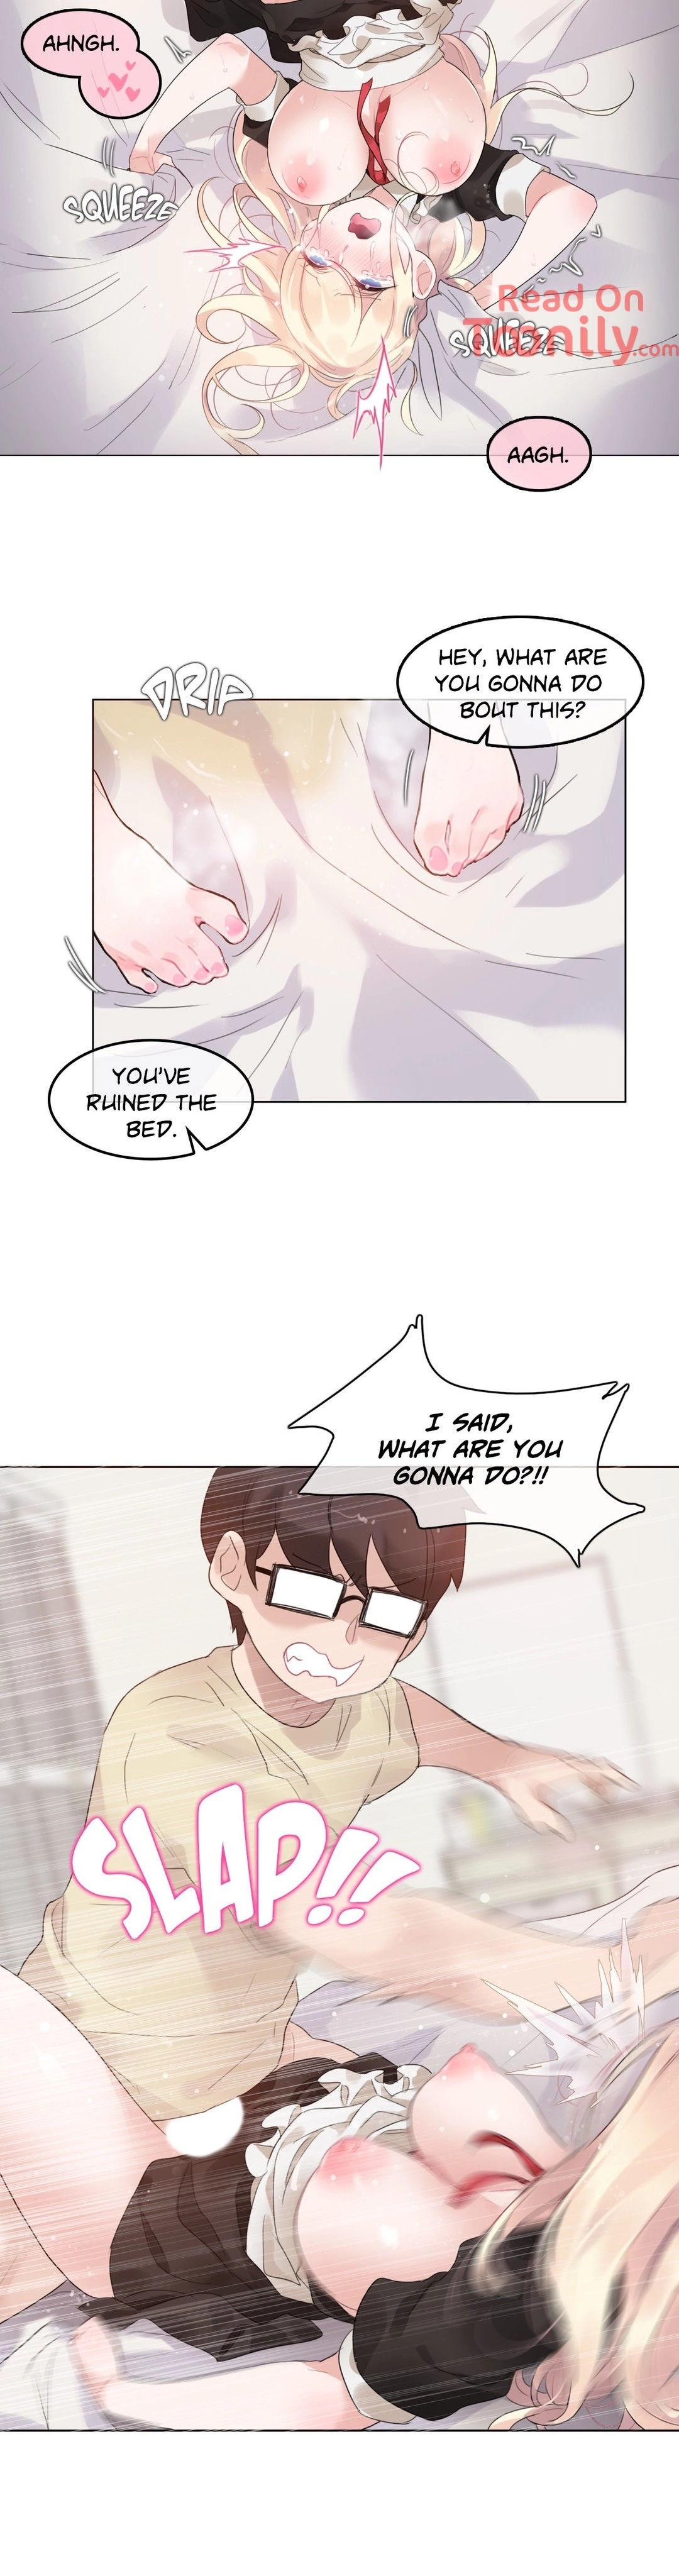 A Pervert's Daily Life Ch. 35-71 754